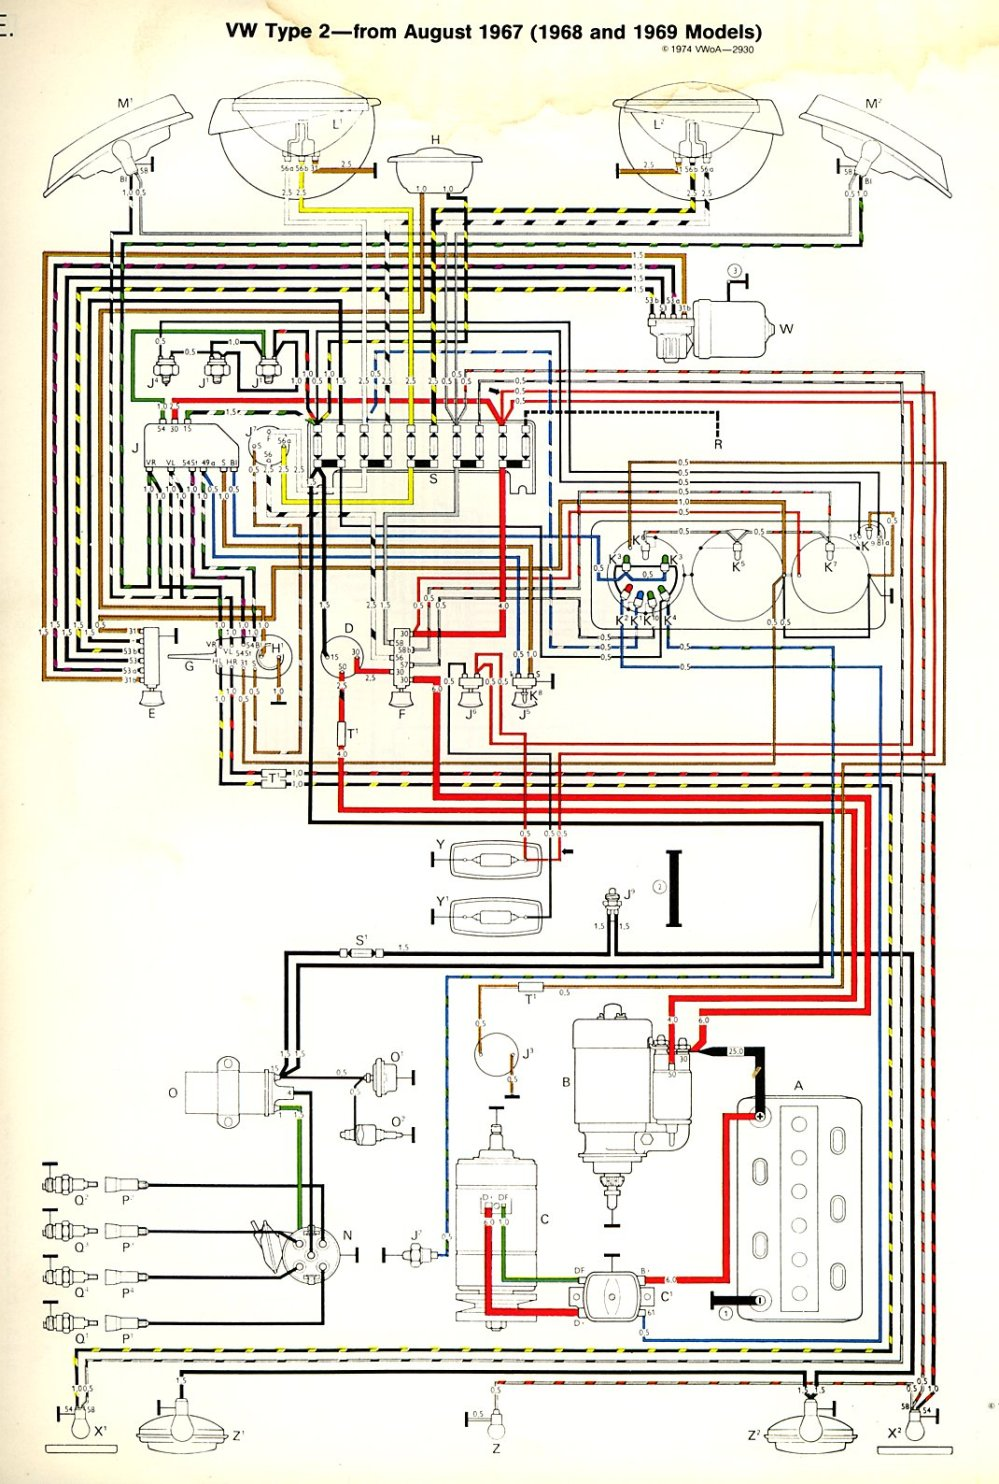 medium resolution of 1974 vw bus alternator wiring wiring diagram blog 1974 vw bus alternator wiring 1974 vw bus alternator wiring